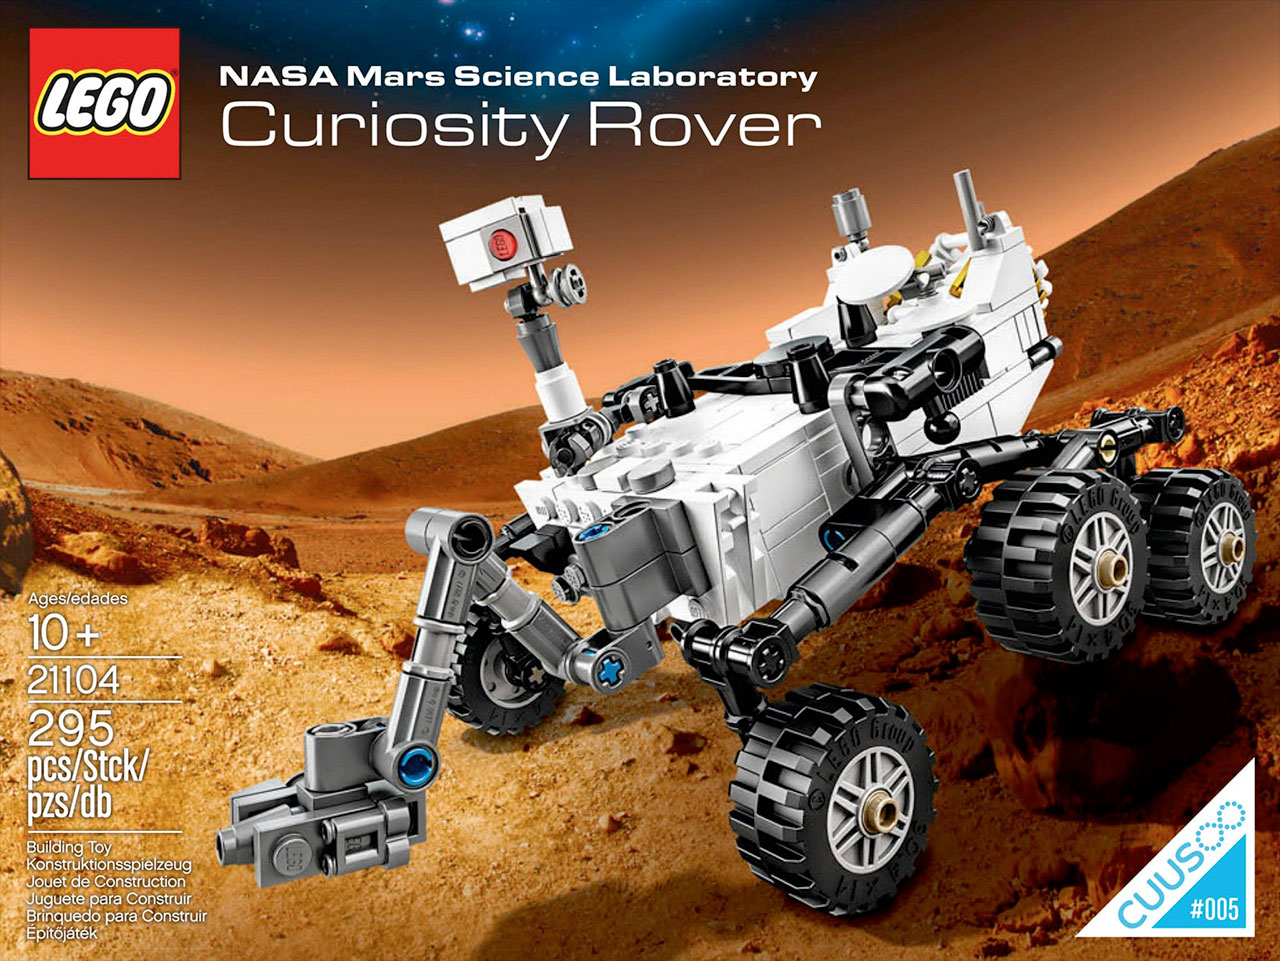 LEGO Launches Mars Curiosity Rover, 5 More Toy Brick Spacecraft Await Liftoff